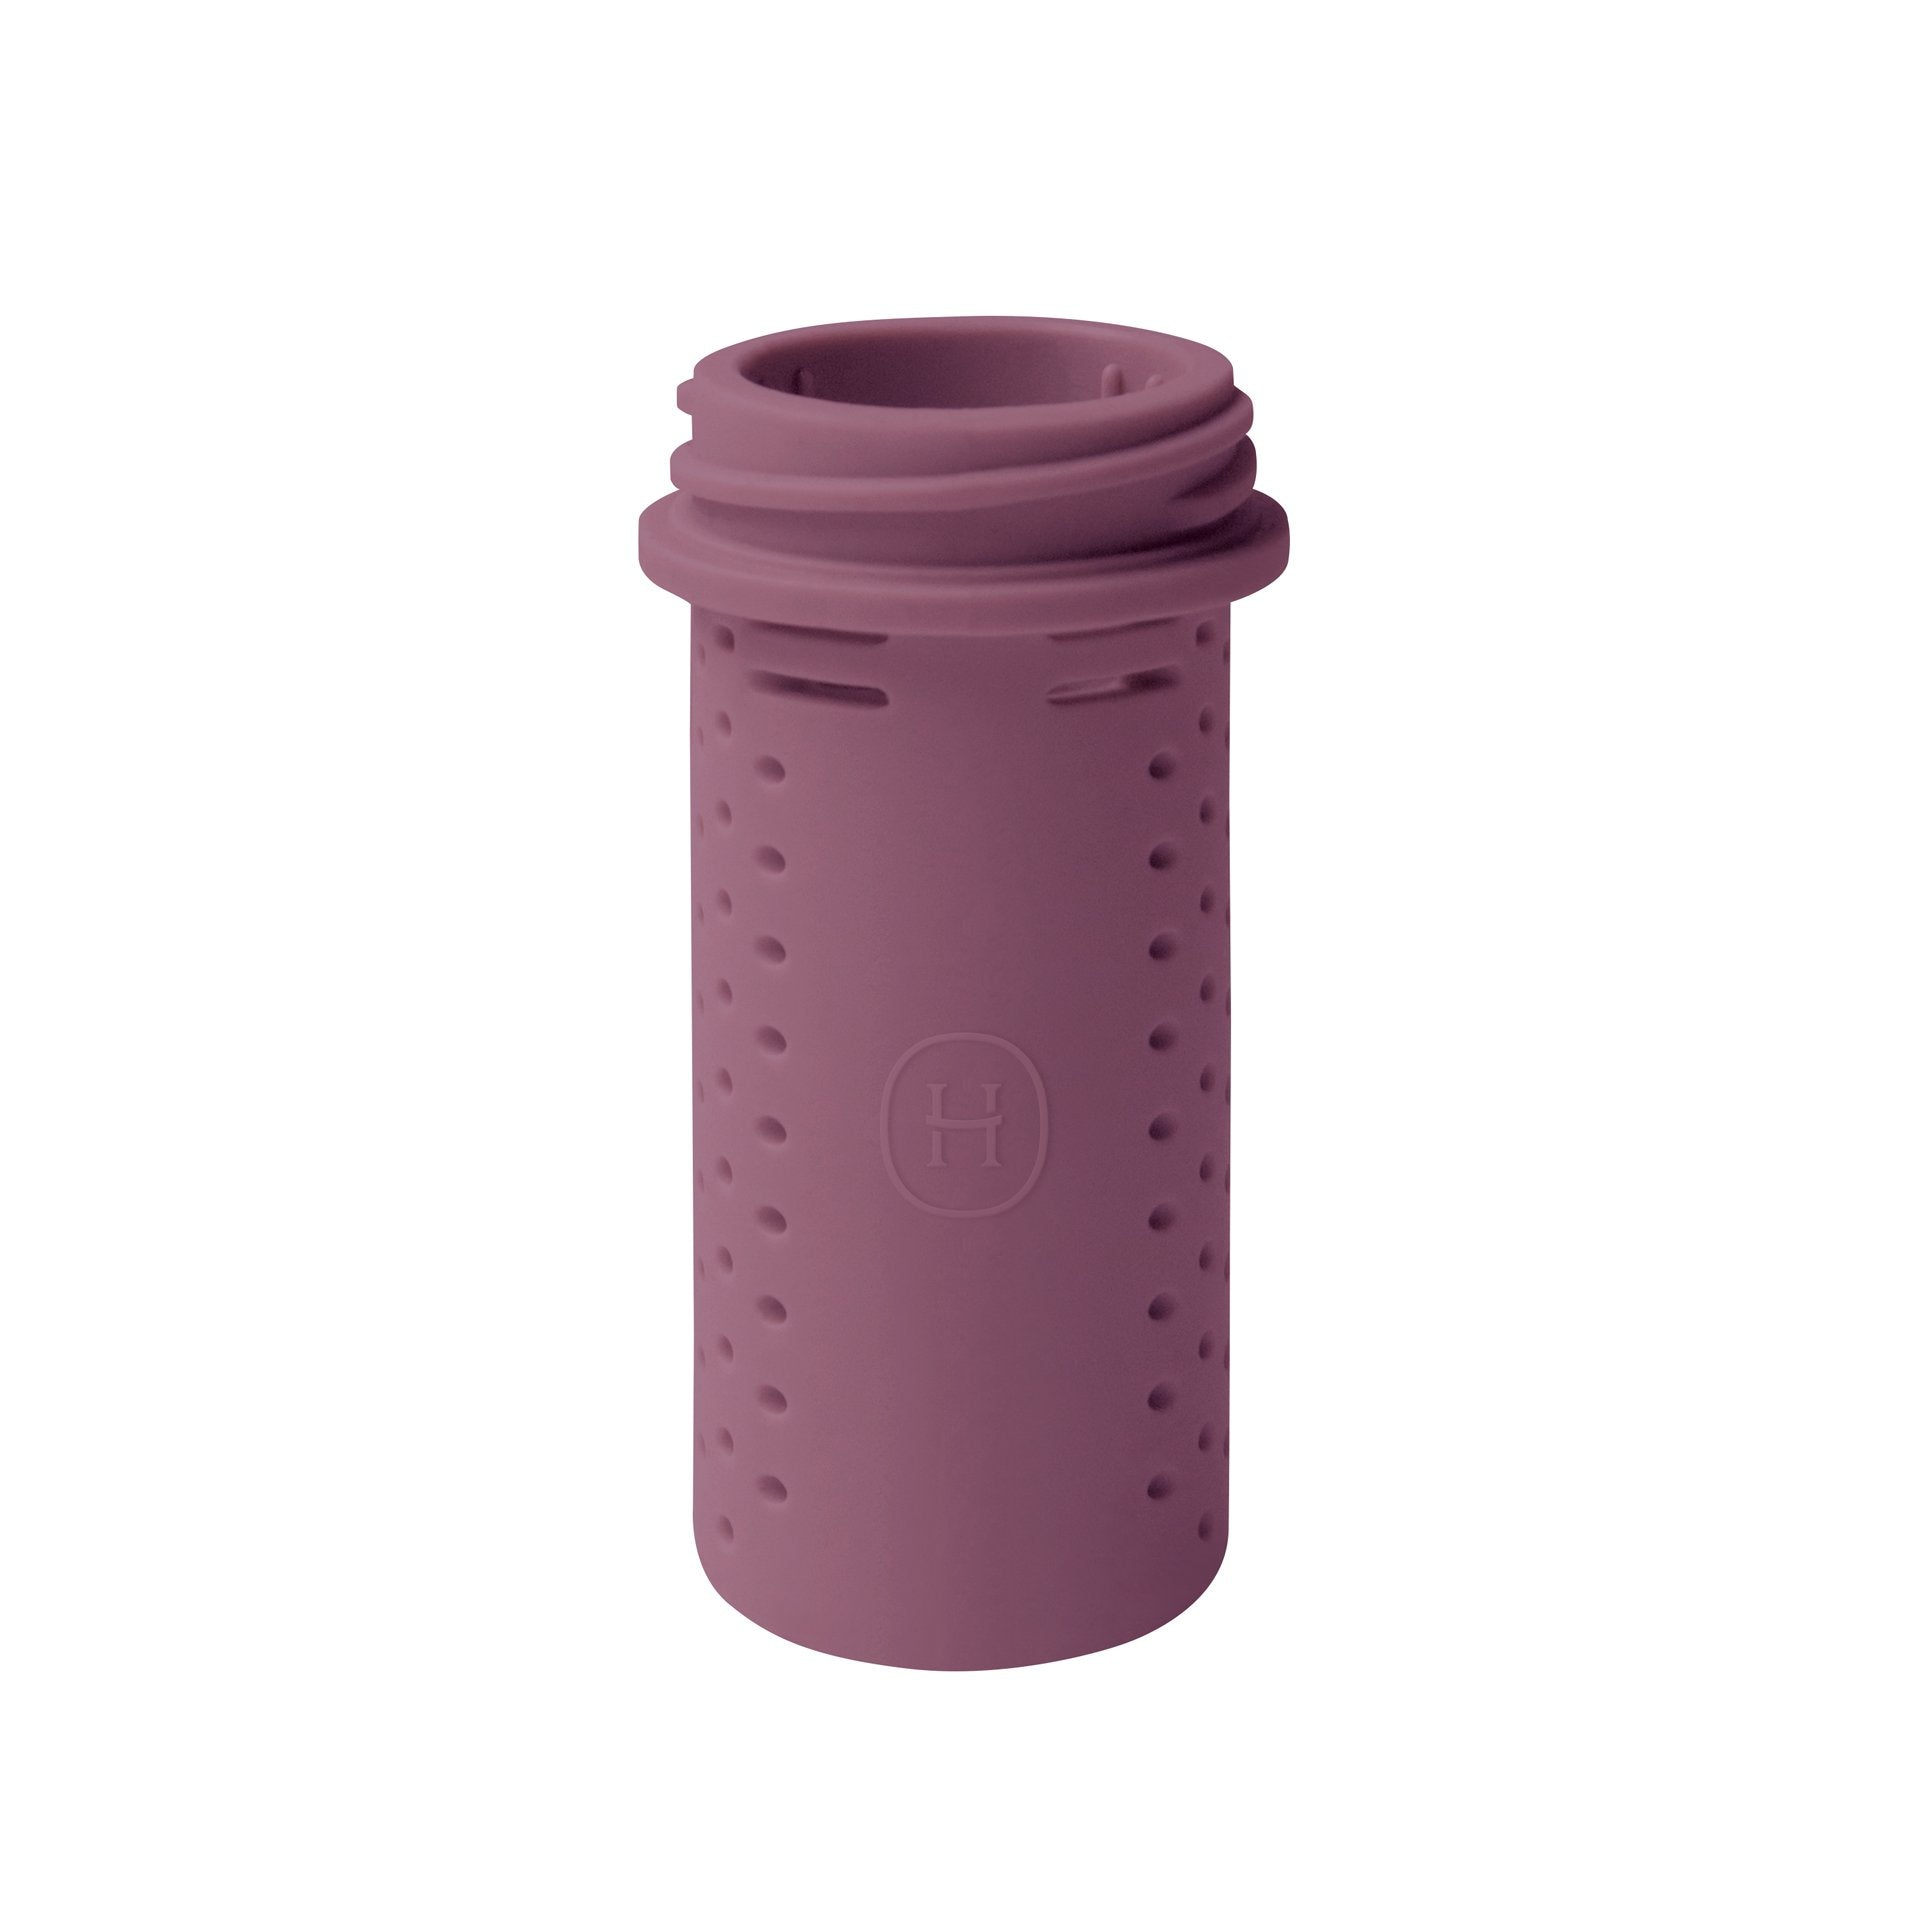 Silicone Tea Infuser-Dusty Rose